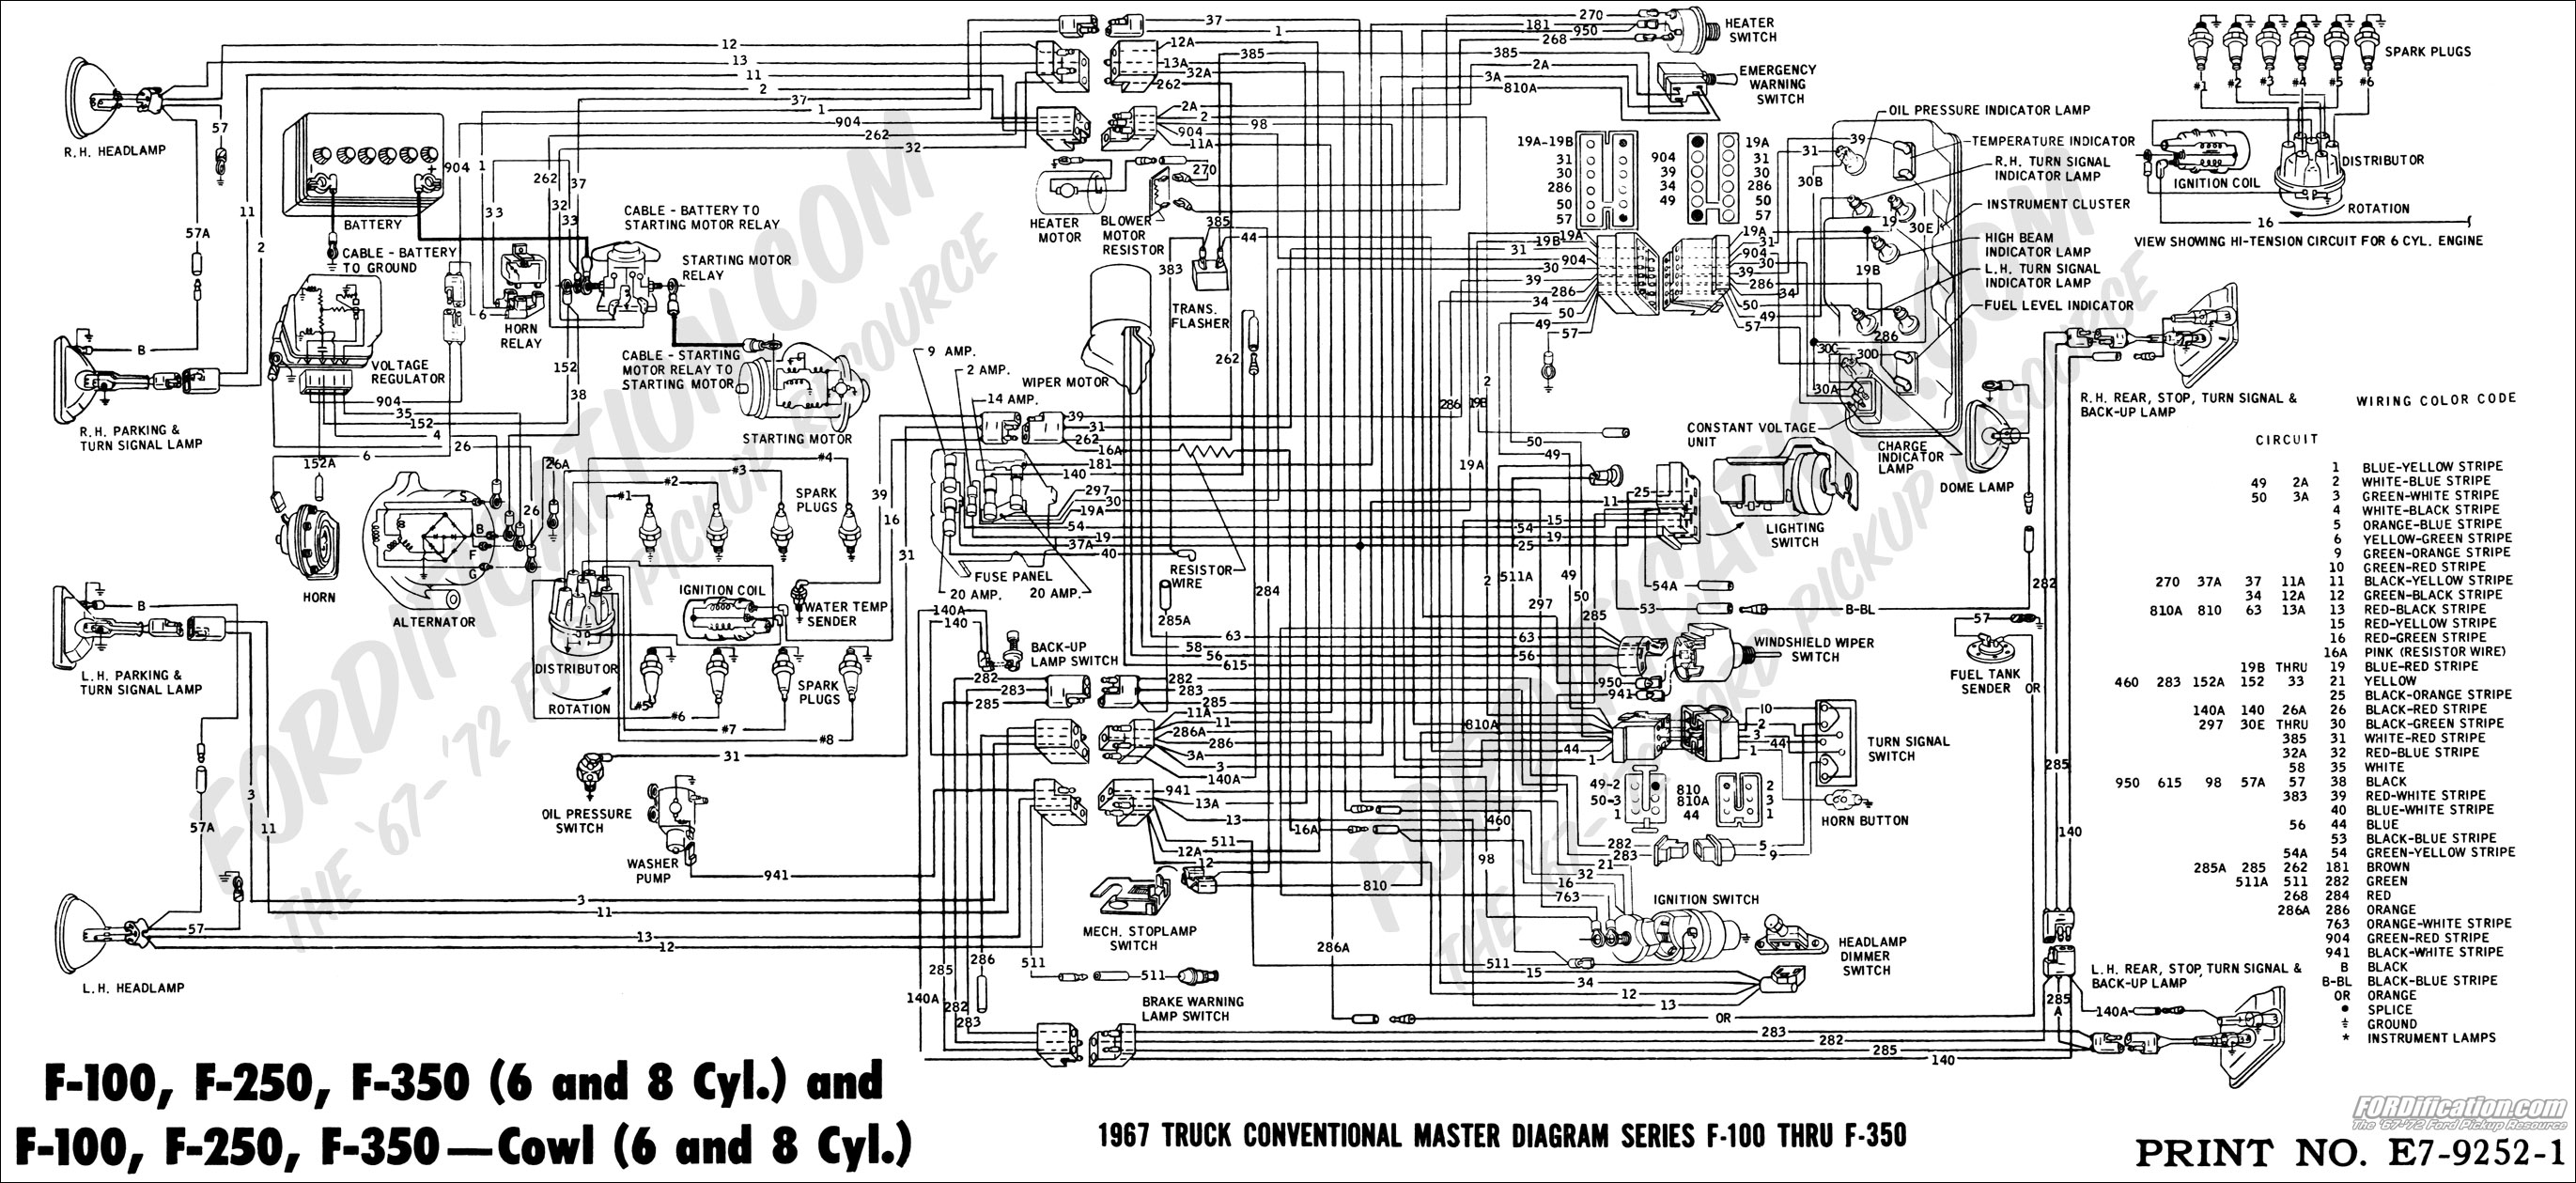 67masterdiagram ford truck technical drawings and schematics section h wiring 1991 ford f150 ignition wiring diagram at creativeand.co